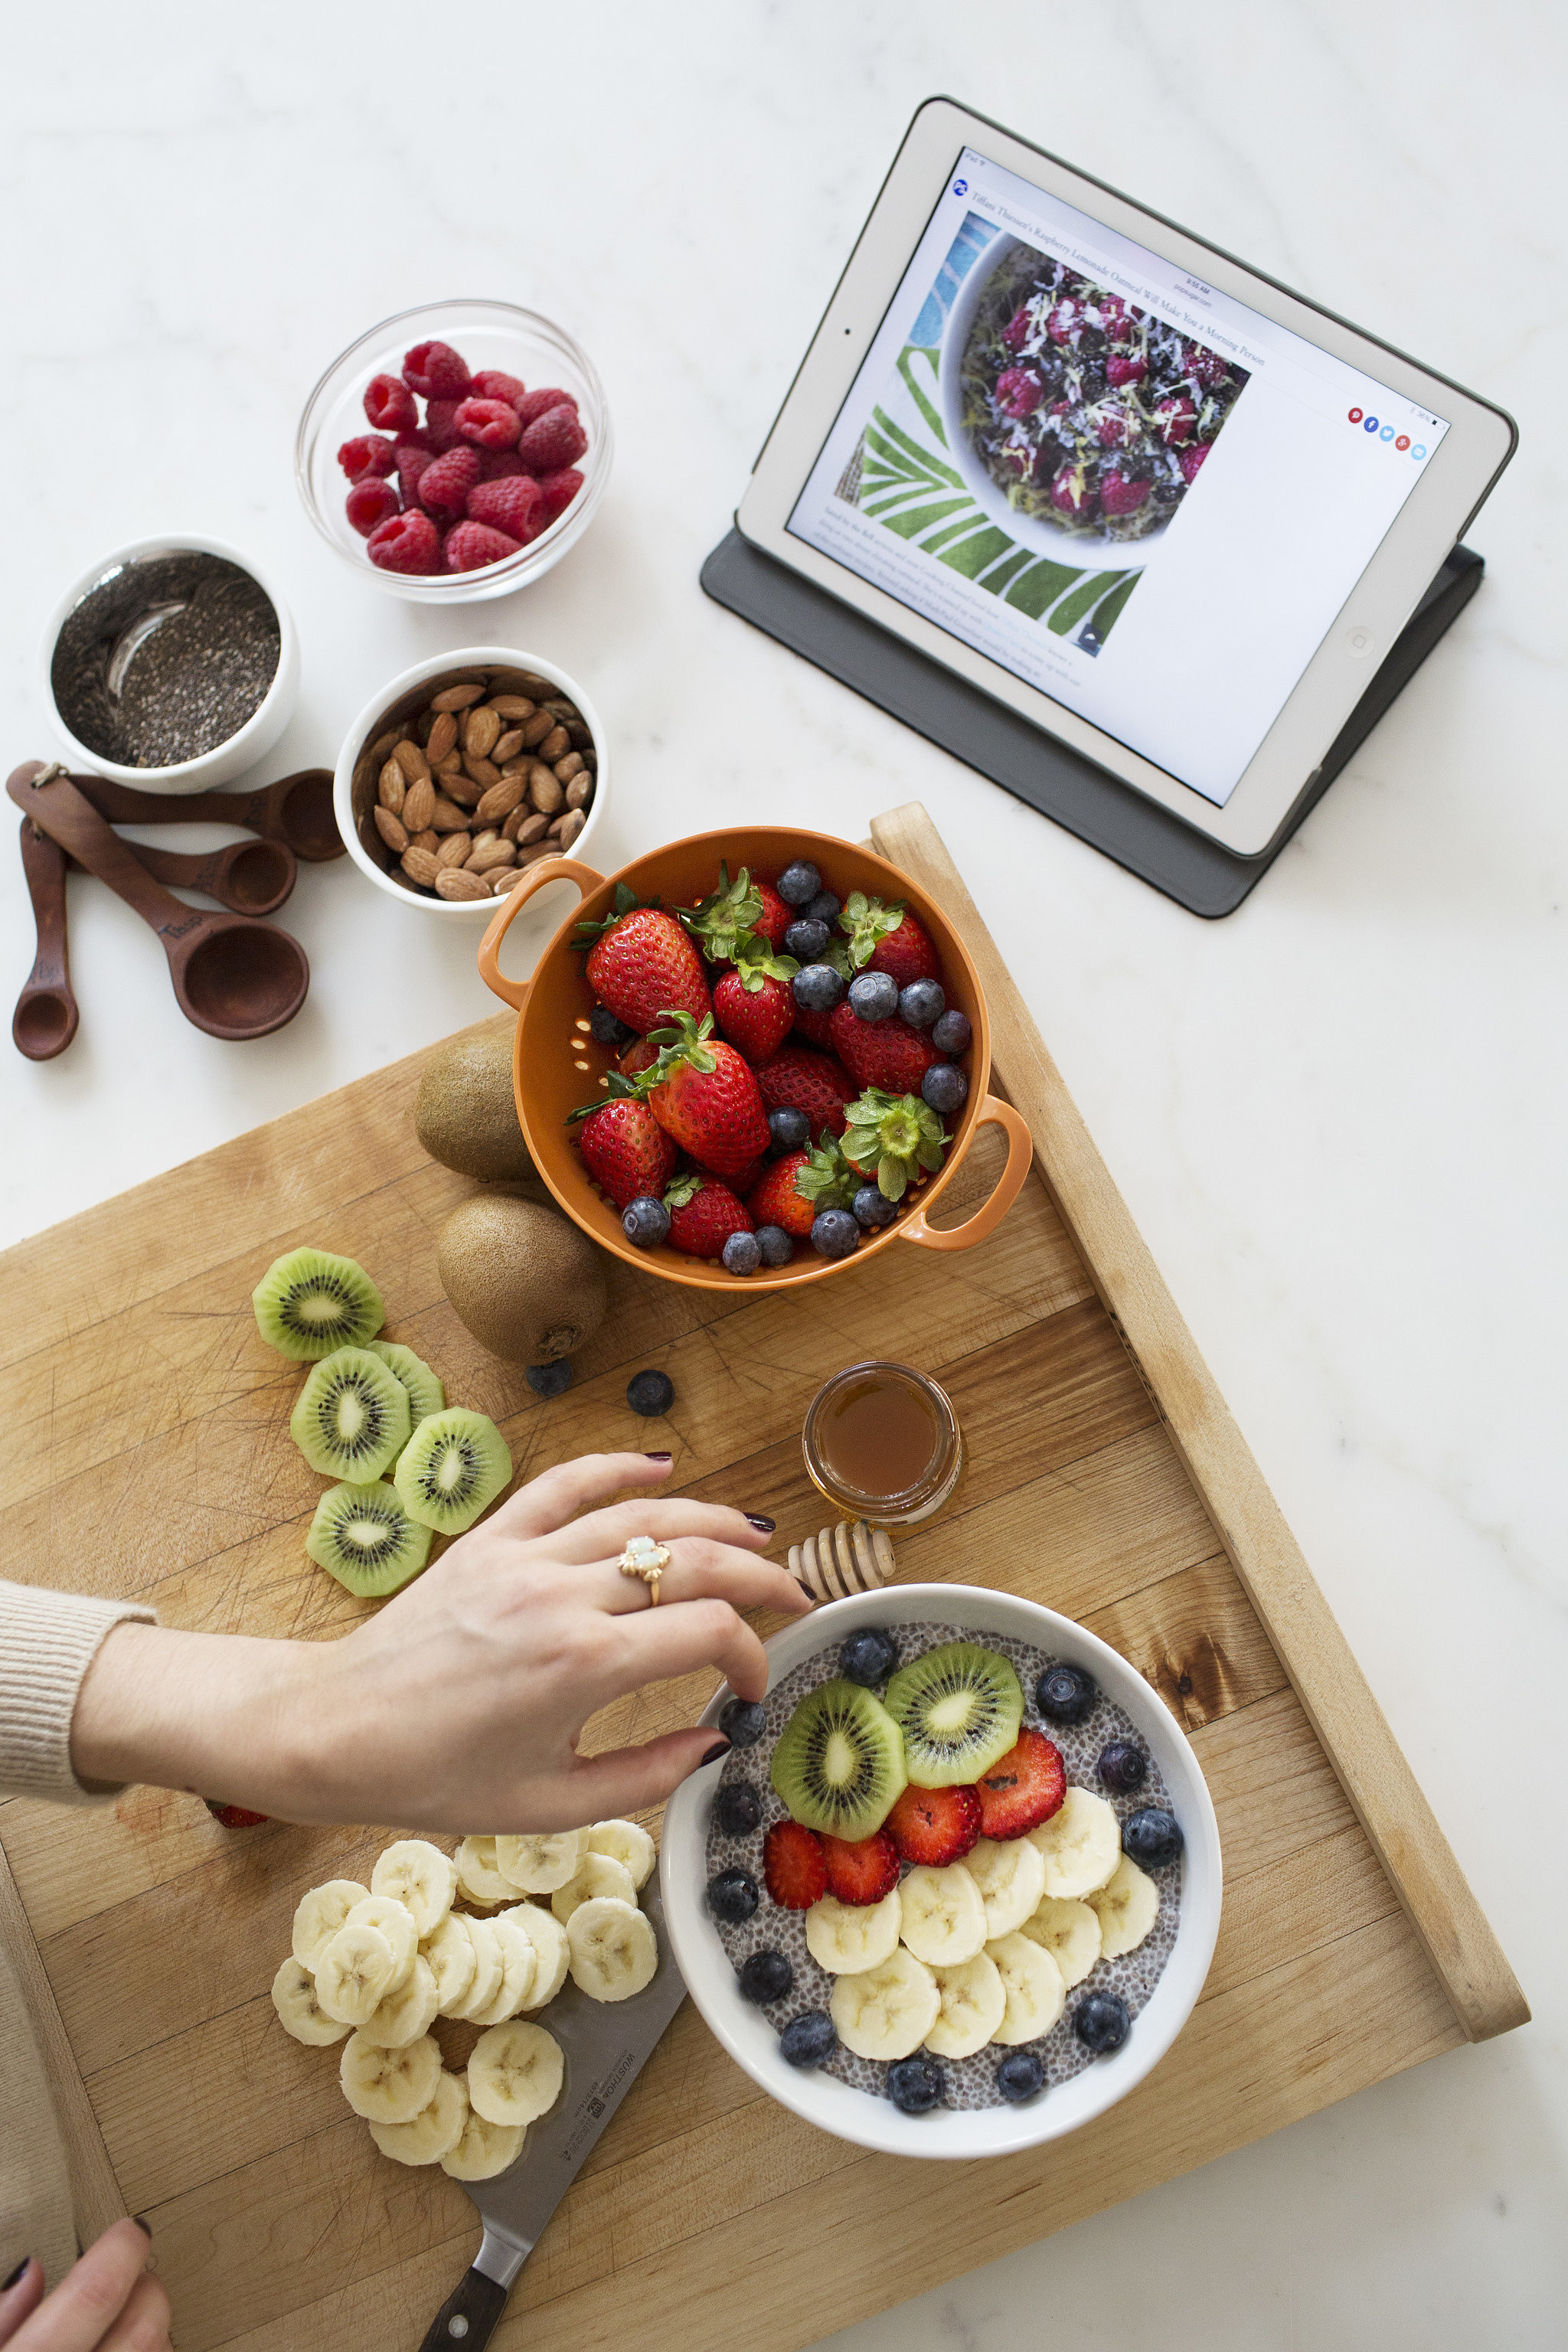 Cheap Healthy Snacks For Weight Loss  Macros For Weight Loss